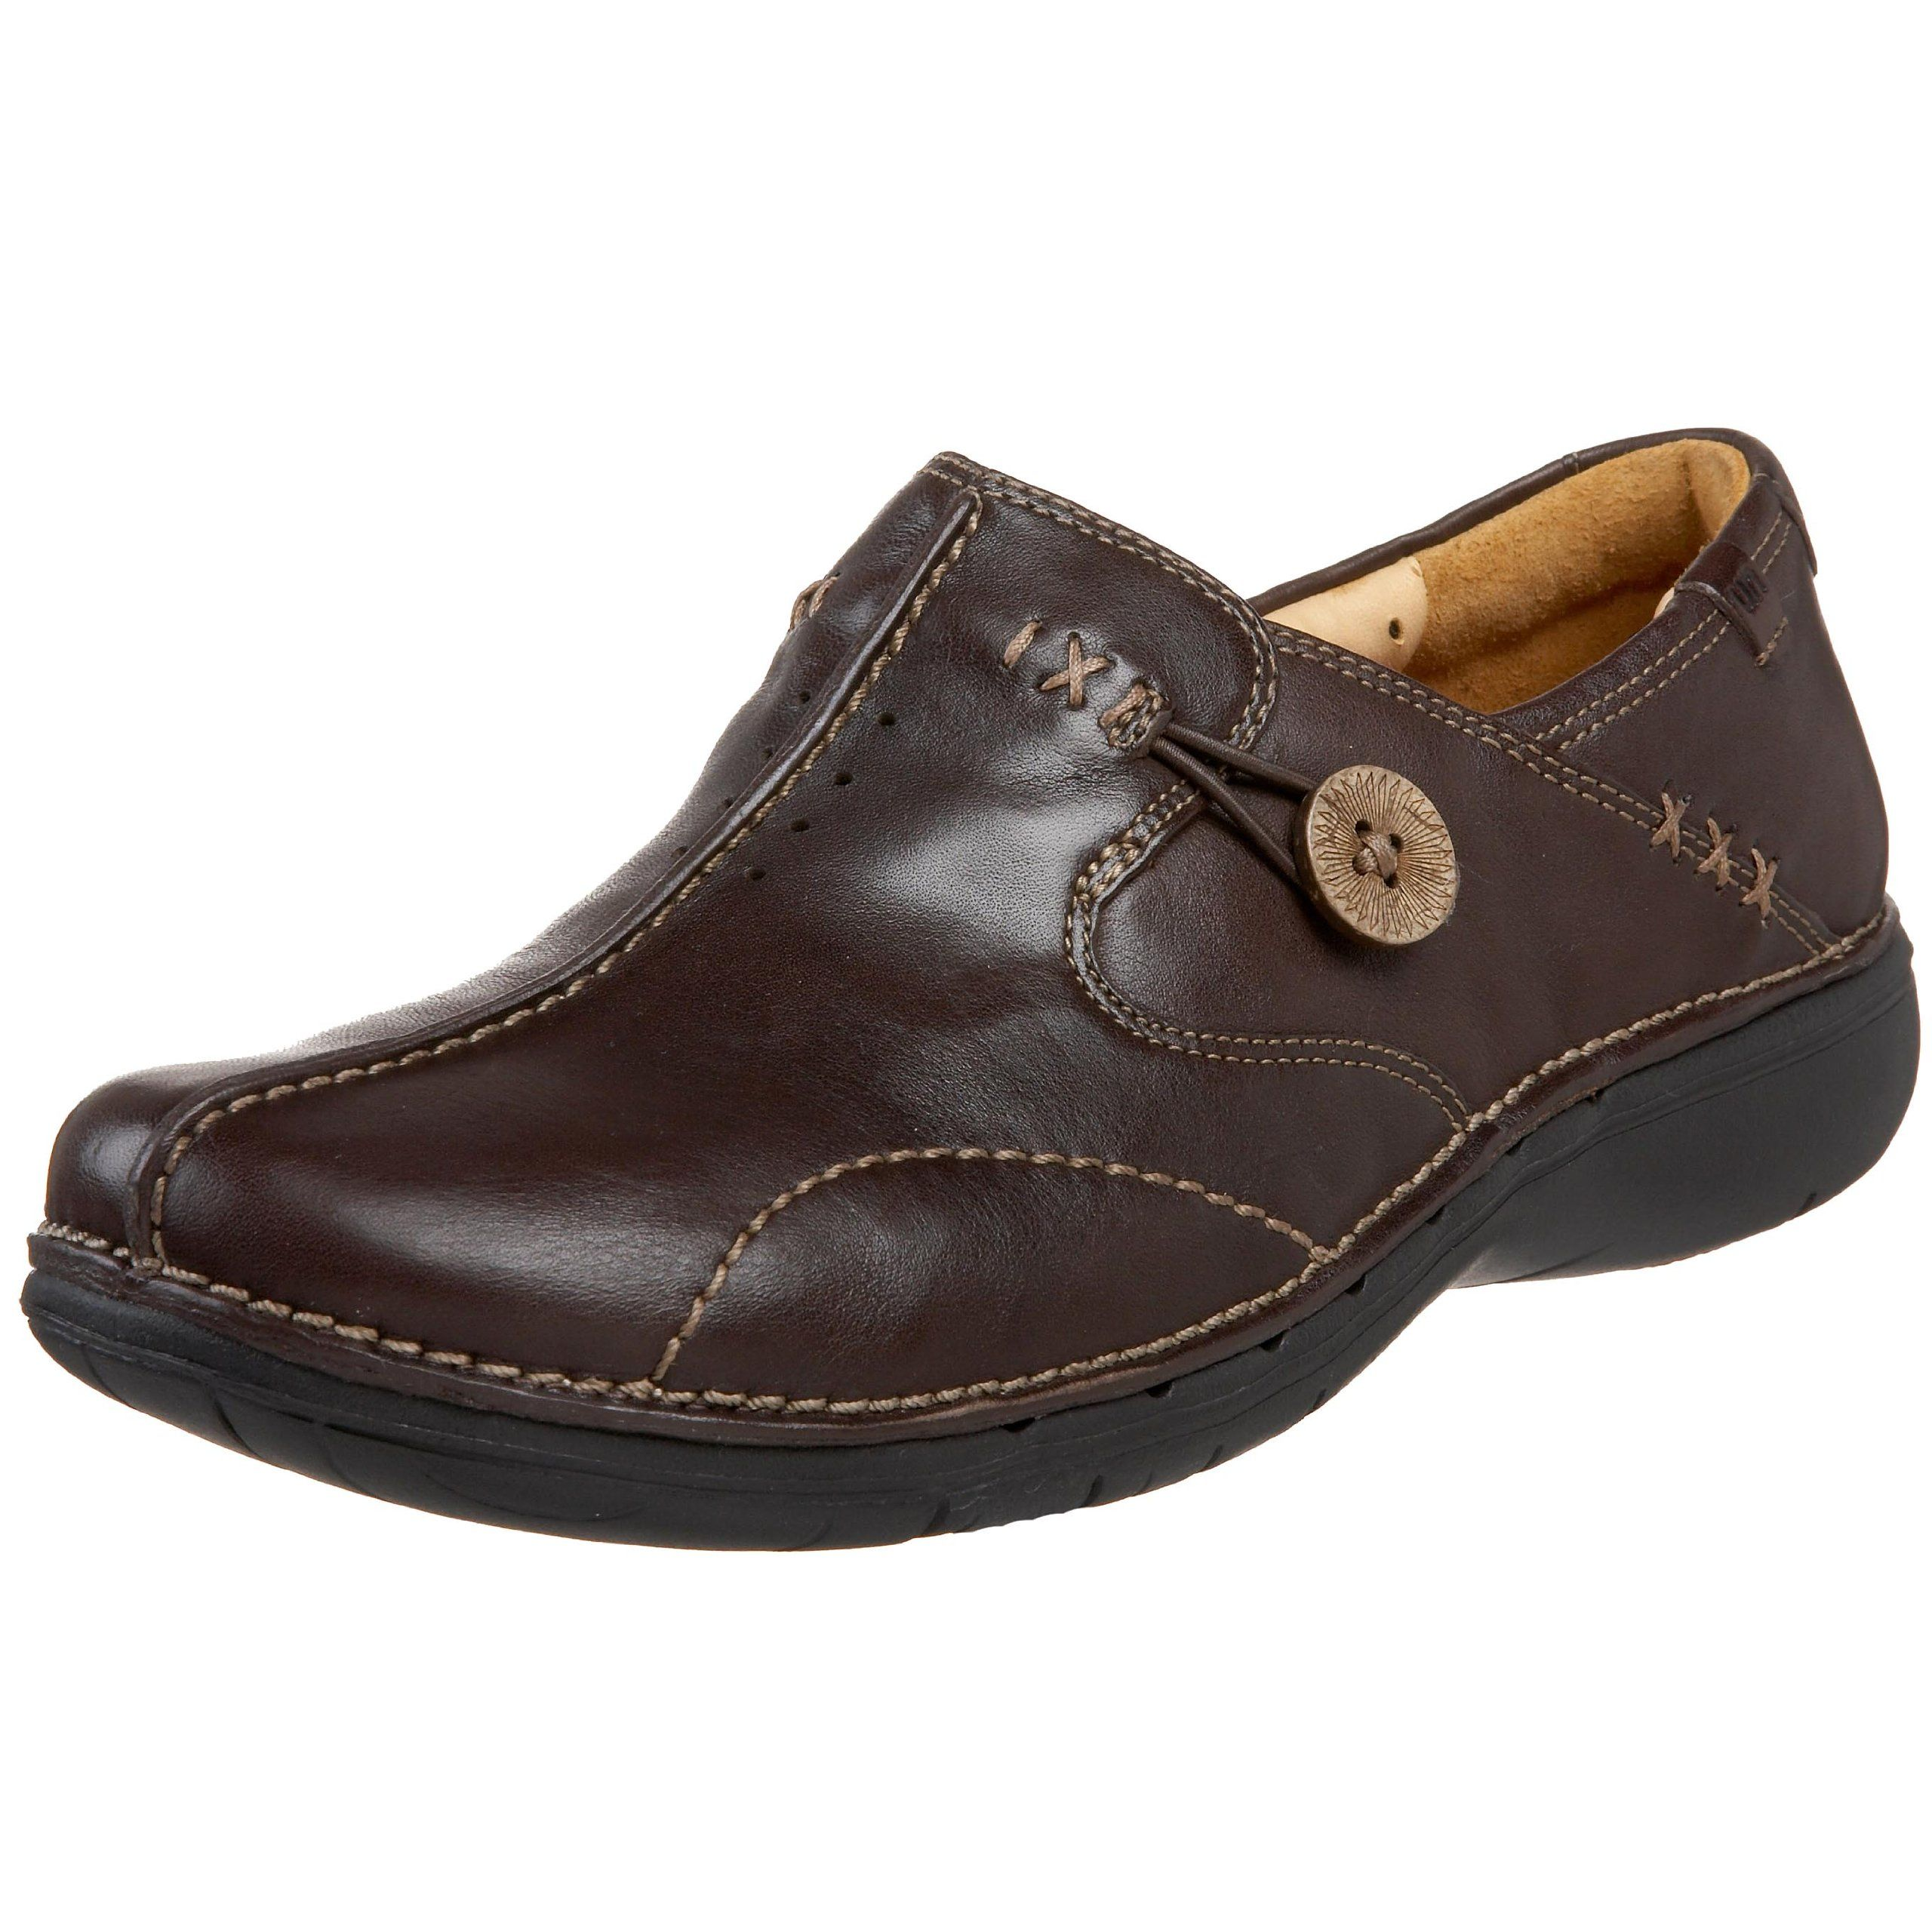 c1977b1a Amazon.com: Clarks Unstructured Women's Un.Loop Slip-on: Loafers Shoes:  Clothing